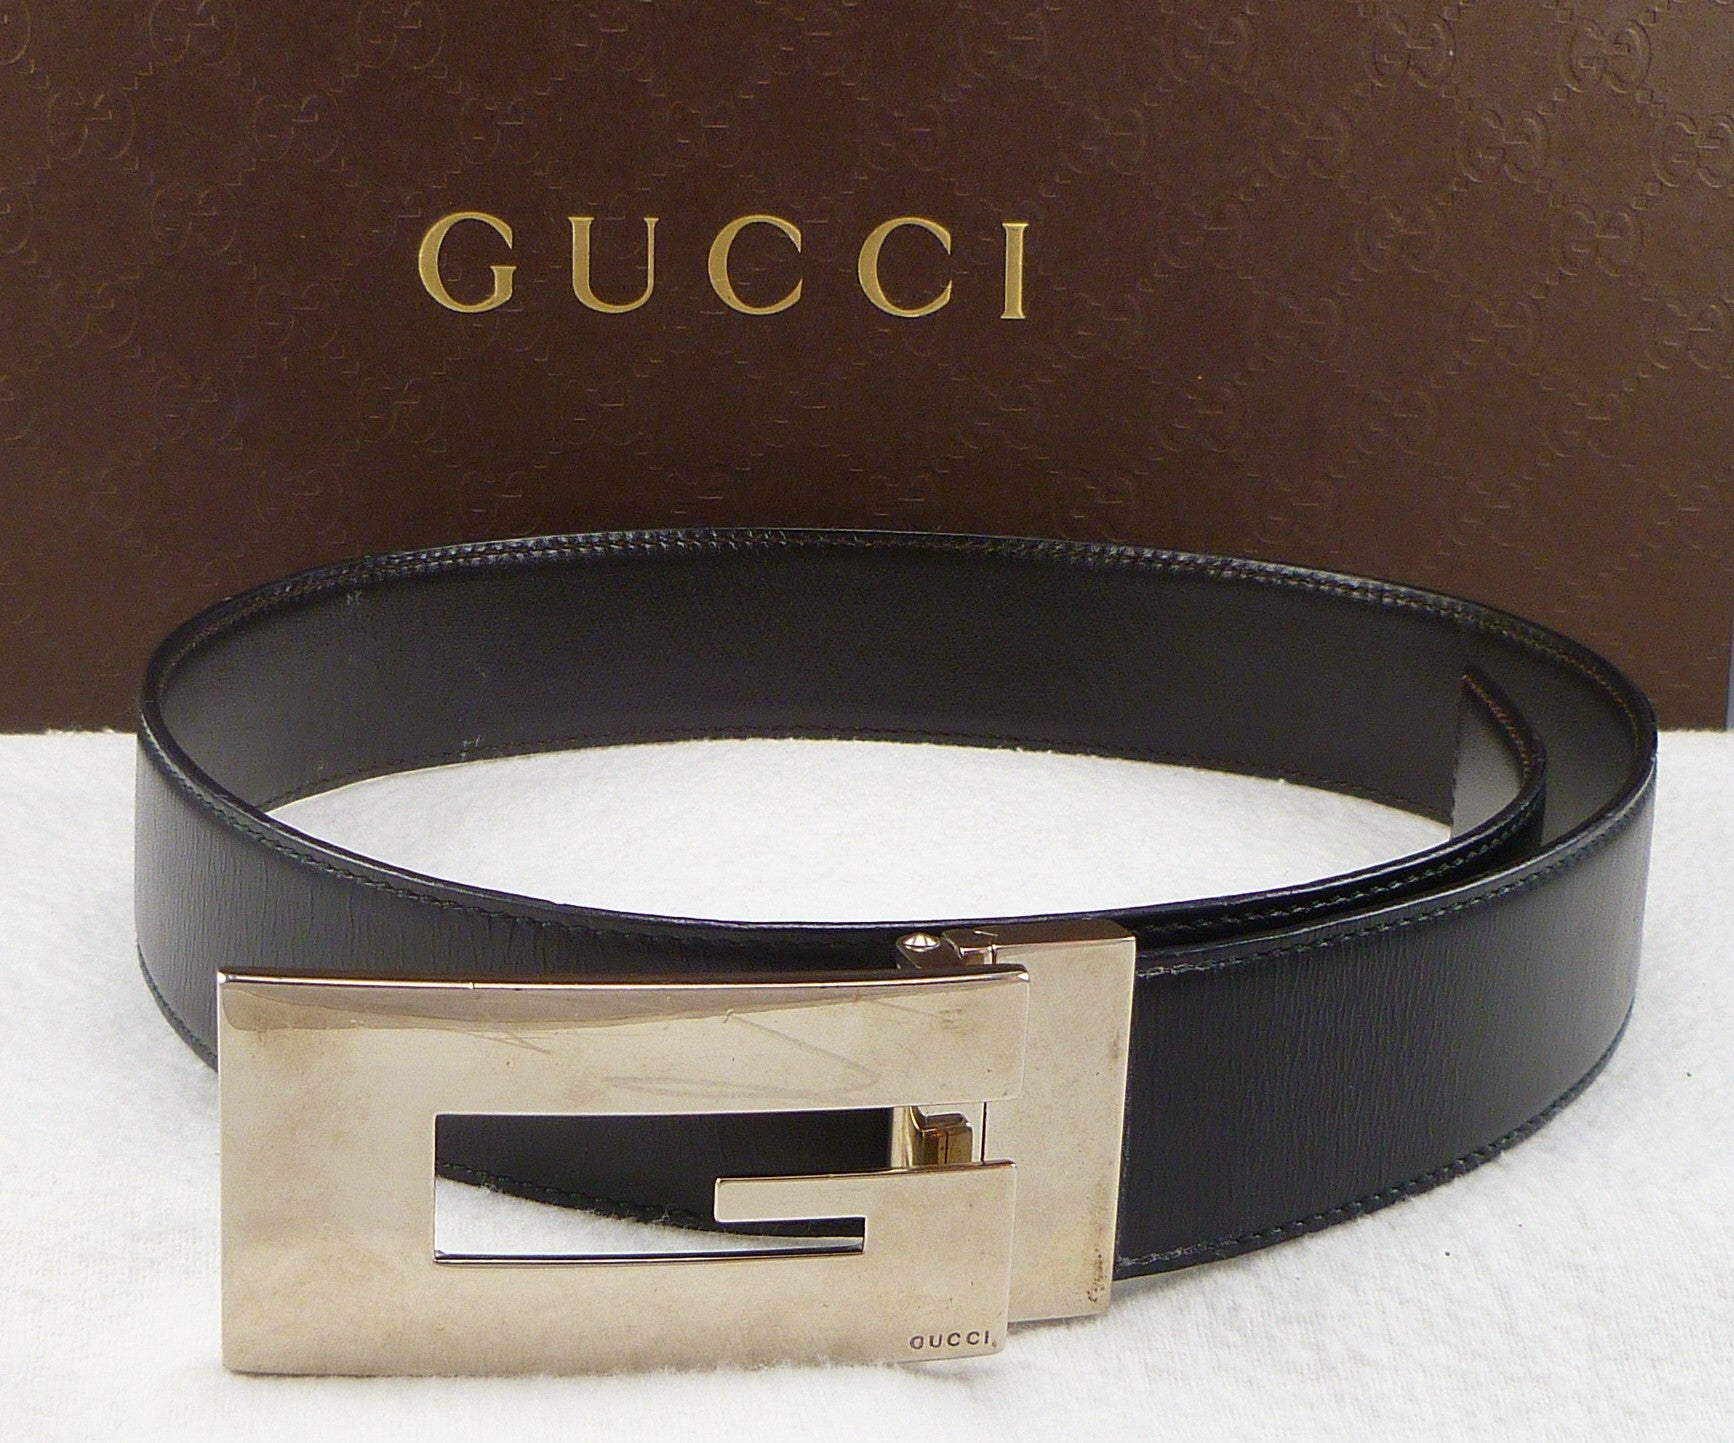 Gucci sz 26/65 Rectangle G Buckle Leather Belt Womens Black